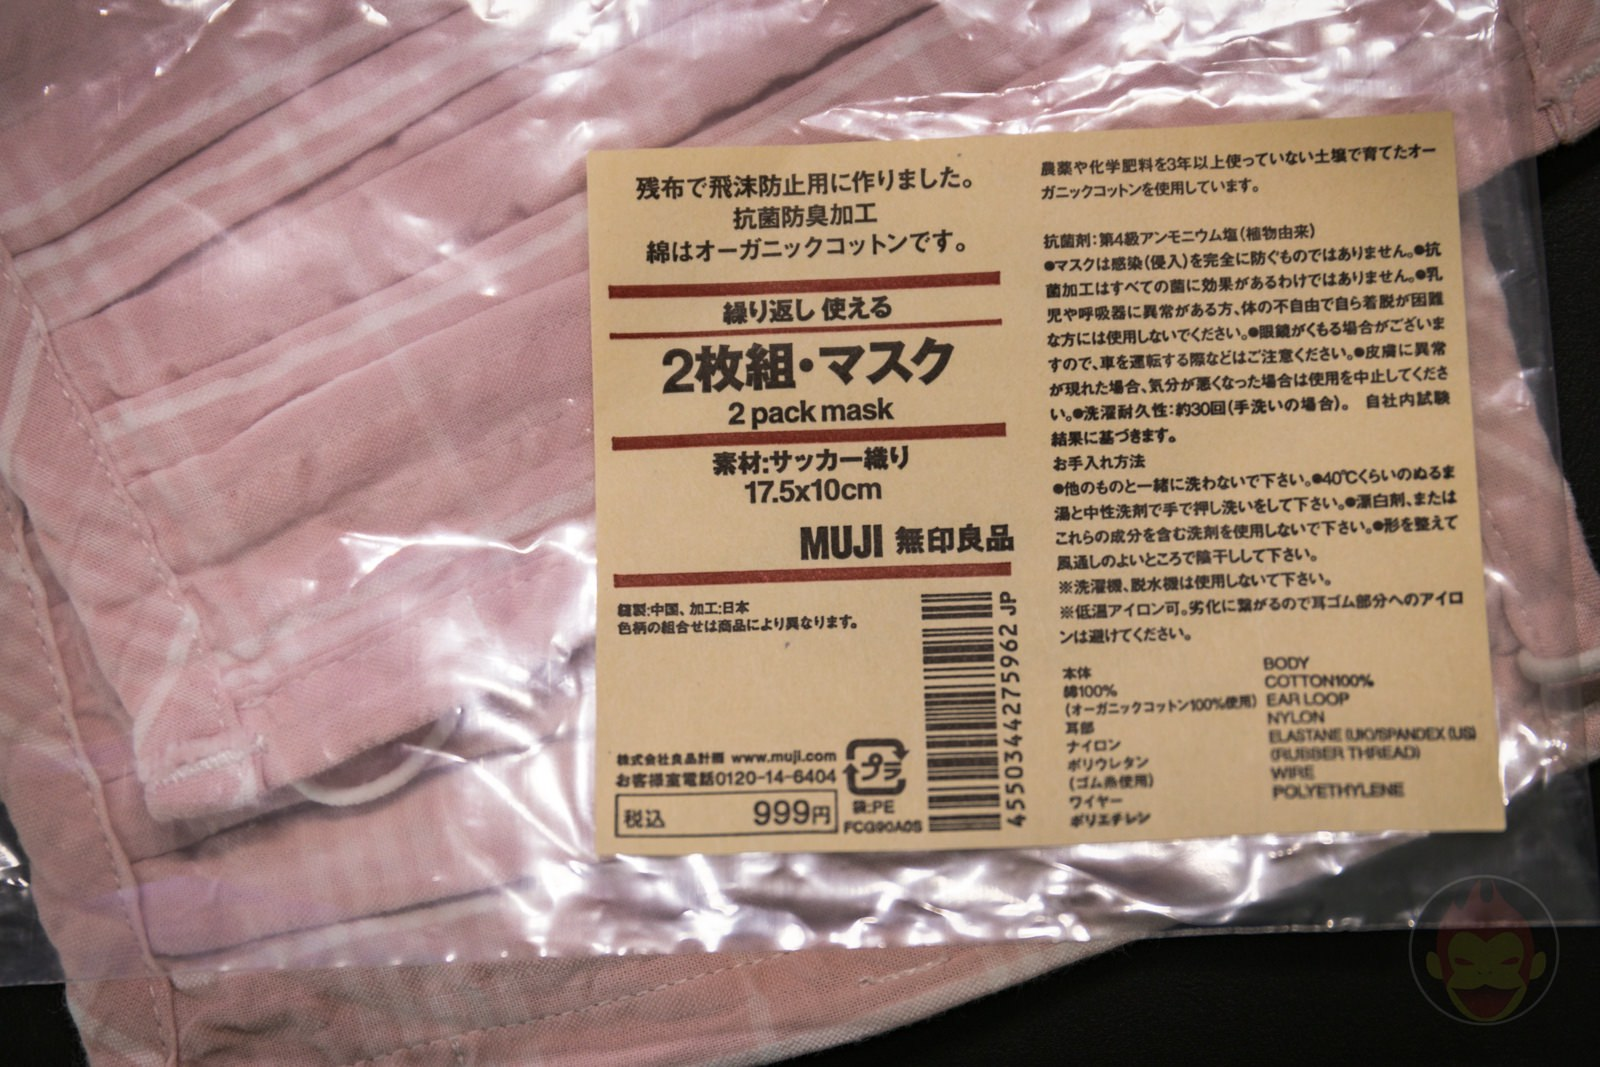 MUIJI Summer Mask Soccer fabric review 01